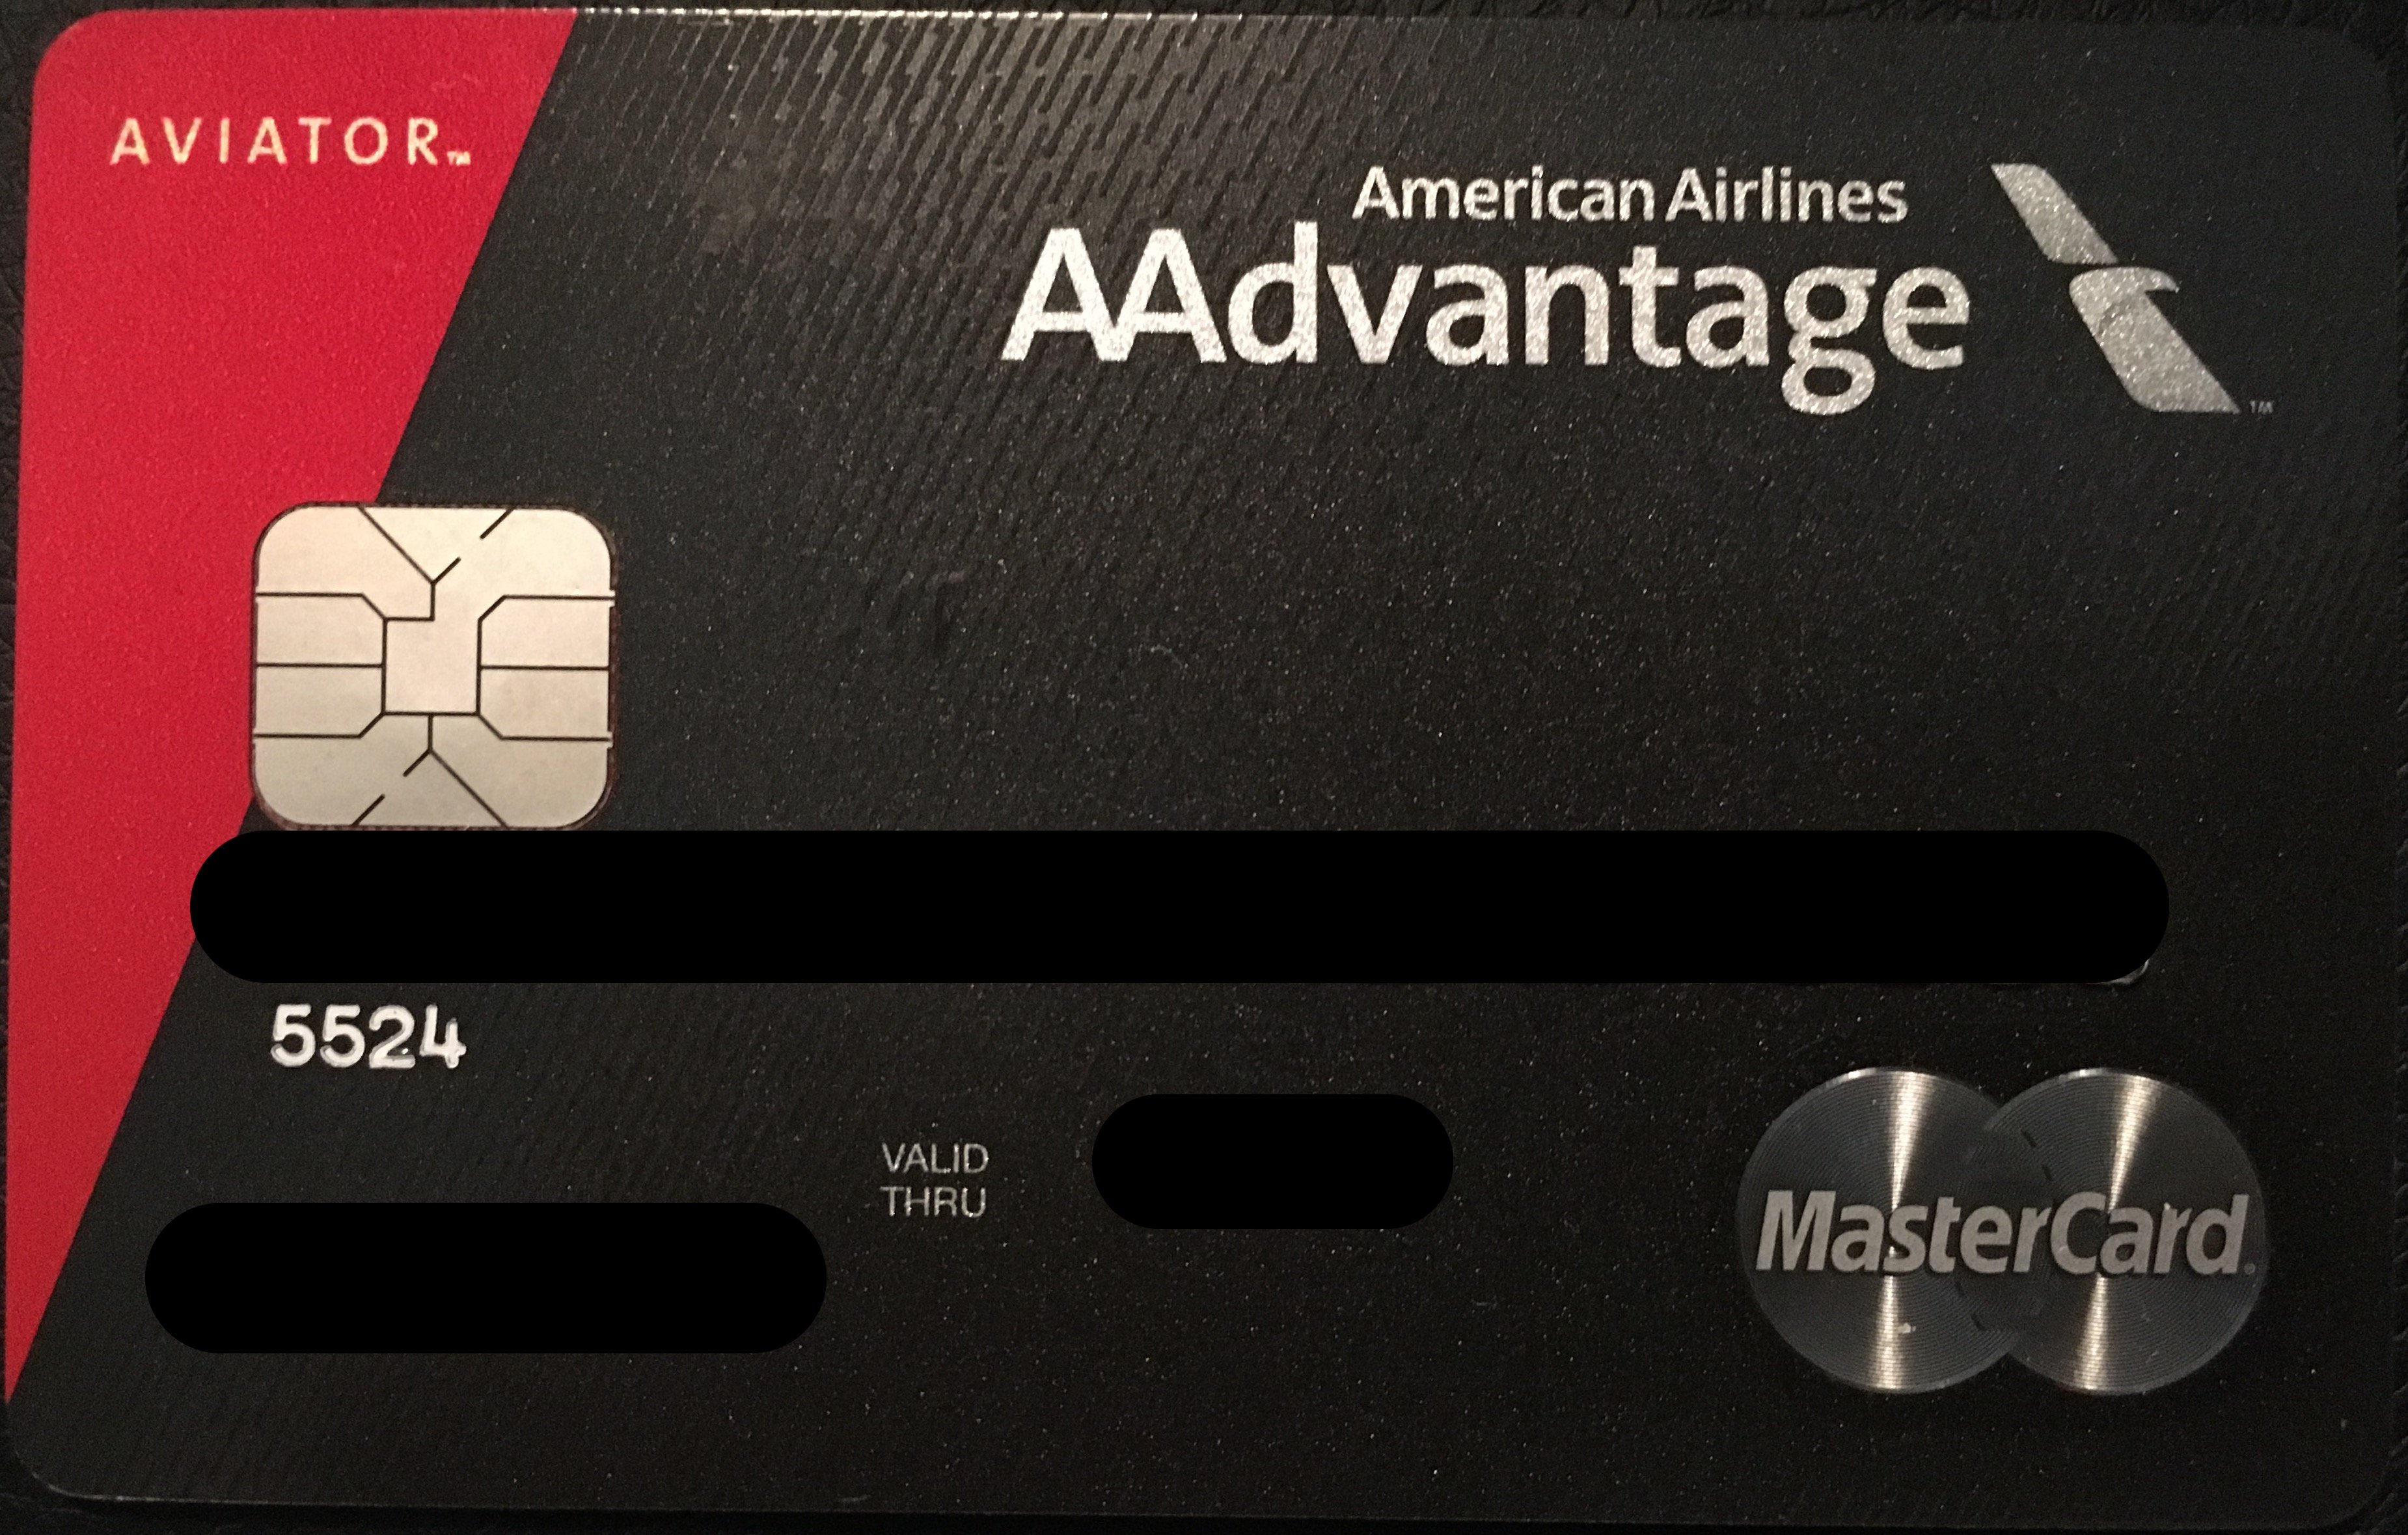 Barclays Aadvantage Aviator Red Credit Card Review 2019 11 Update 60k Offer Us Credit Card Guide